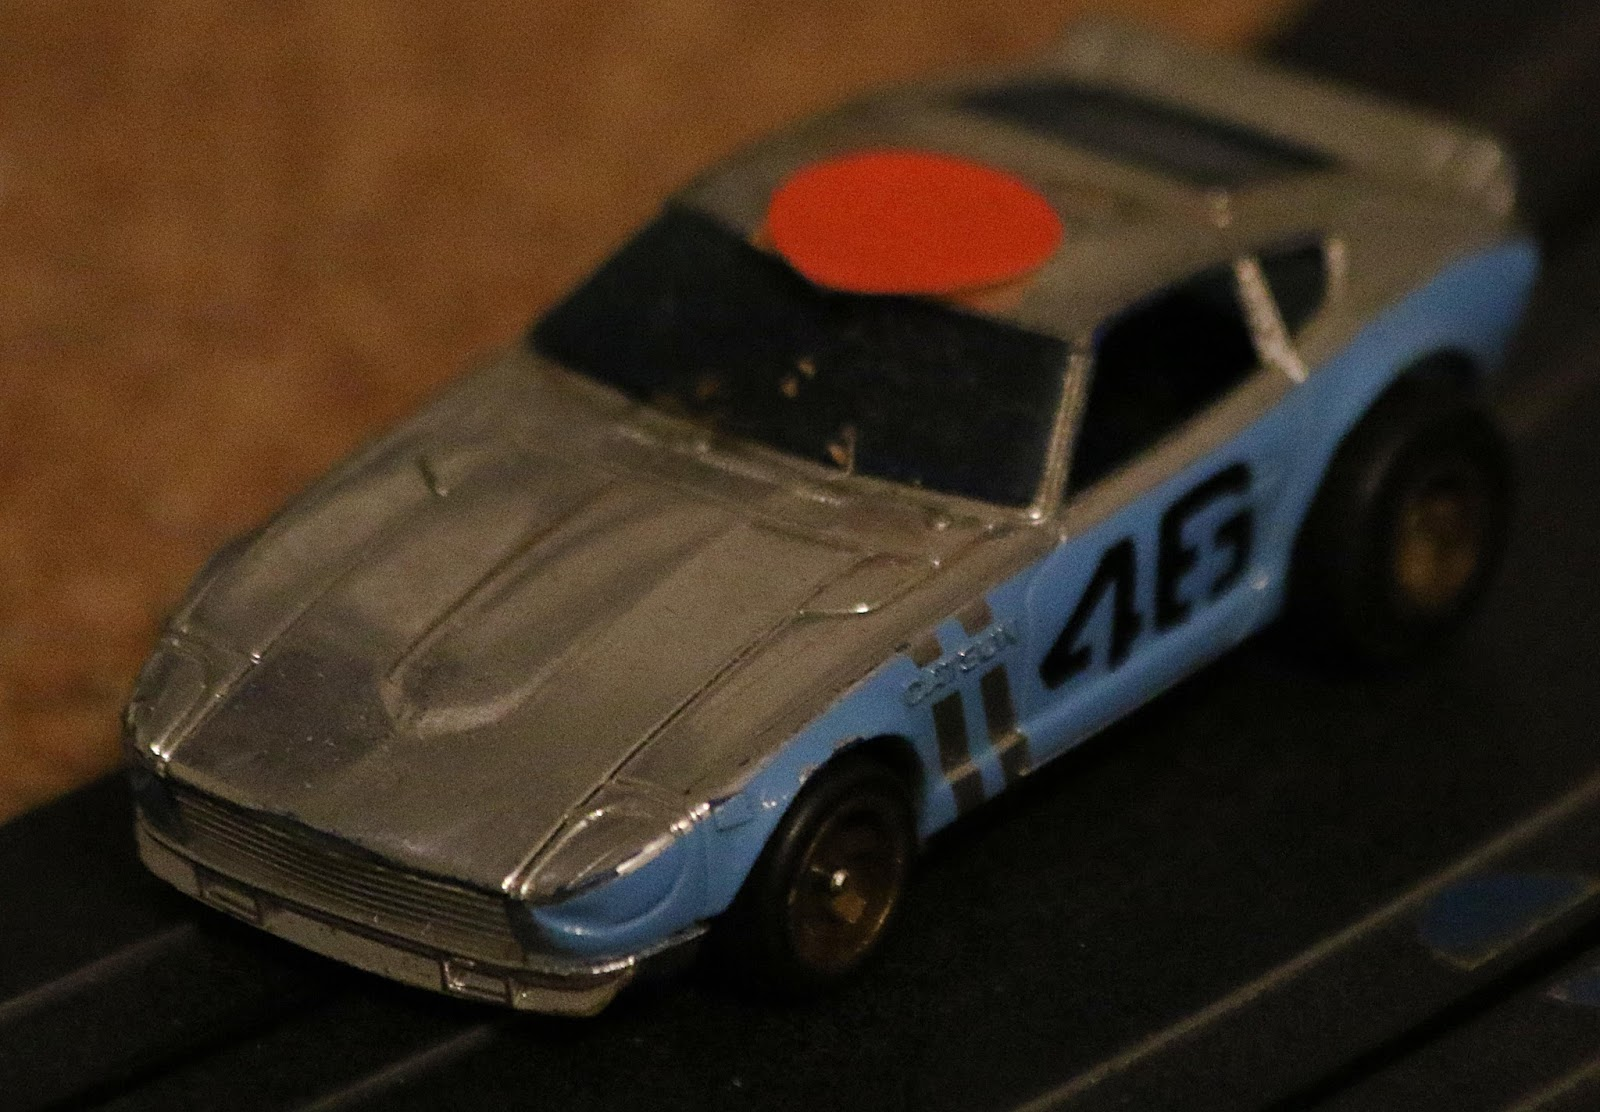 Rouen Les Afx 64 Memories Of Ho Scale English National Slot Car Racing Life Like Rokar Chassis Repair Parts And Diagrams My Favourite Gt Body Shape An Aurora Datsun